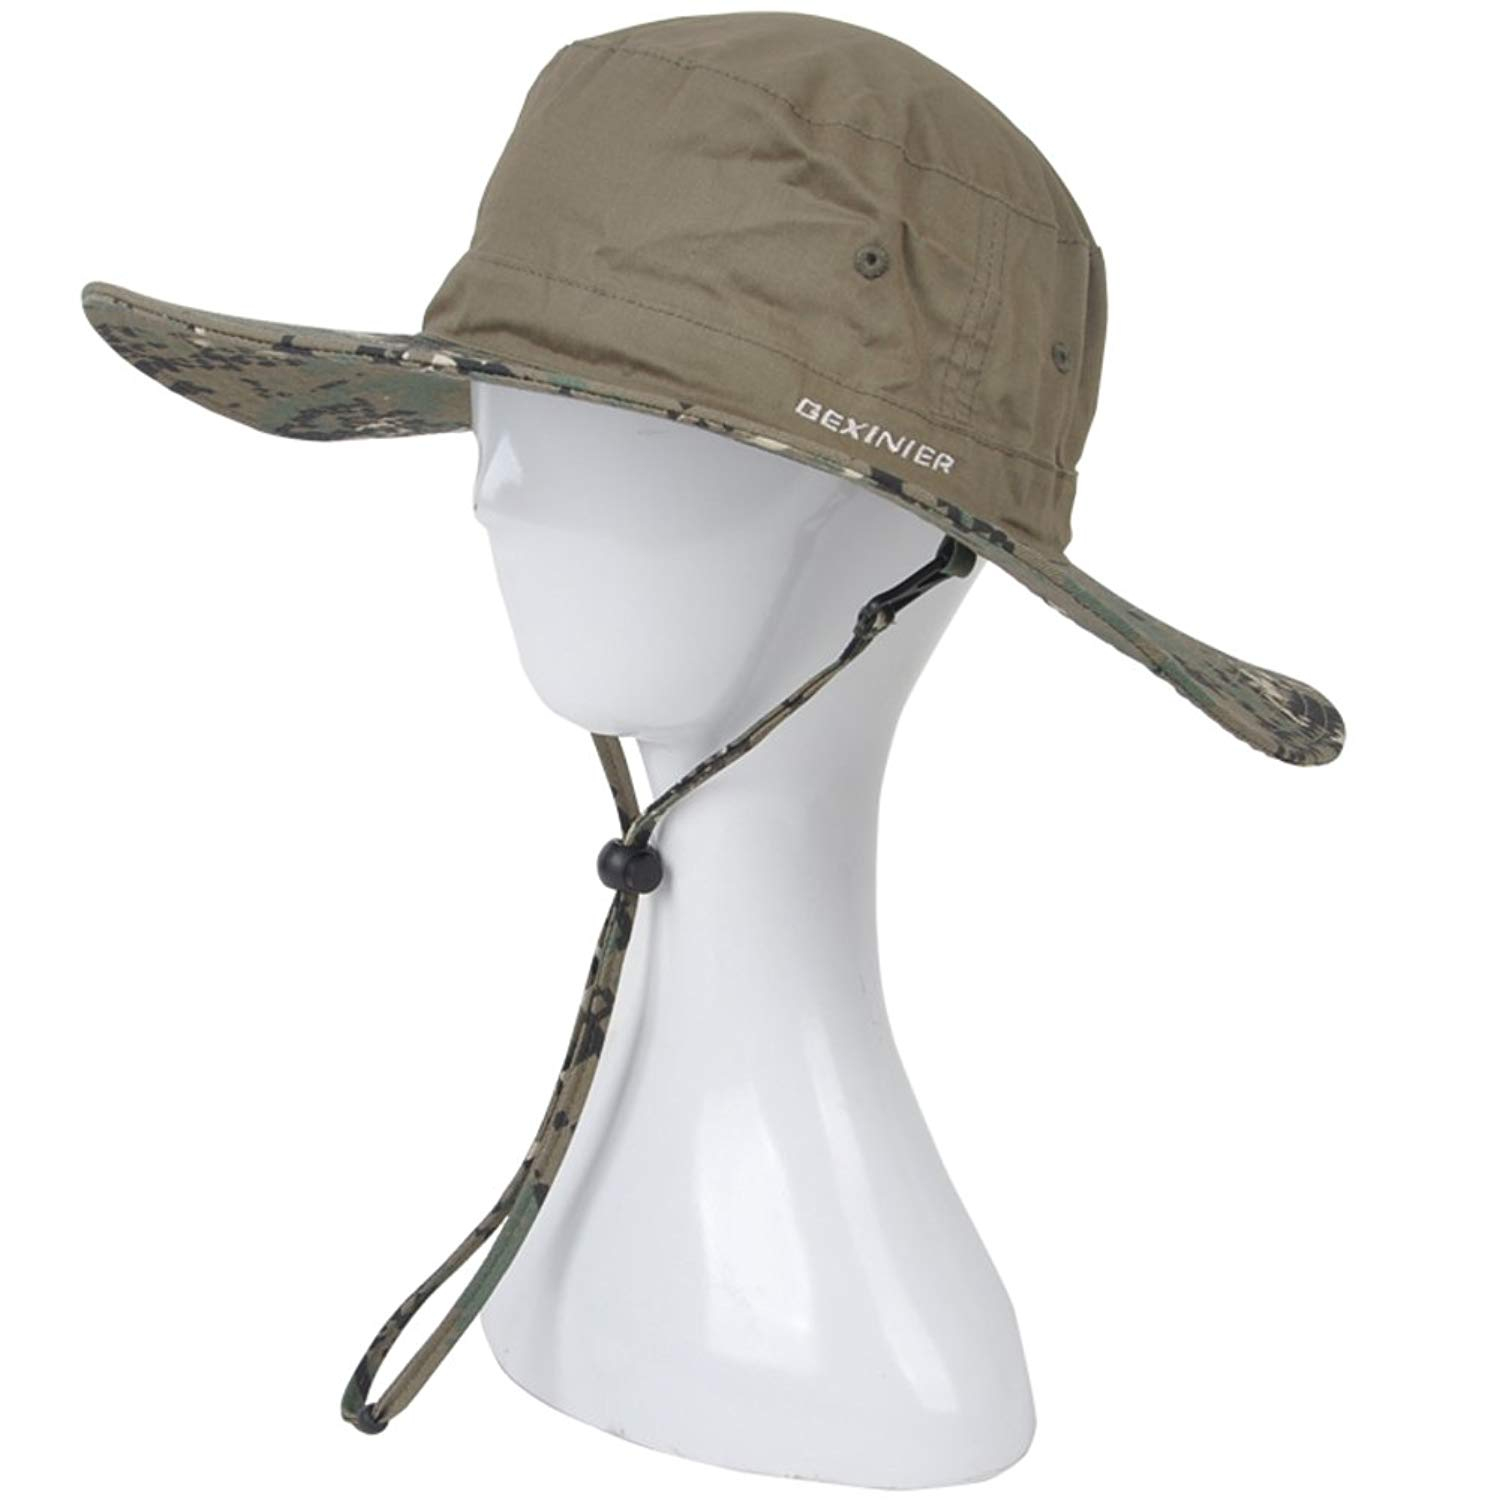 Outdoor hats/Big eaves hat/Sun hat/sunhat/Jungle hat